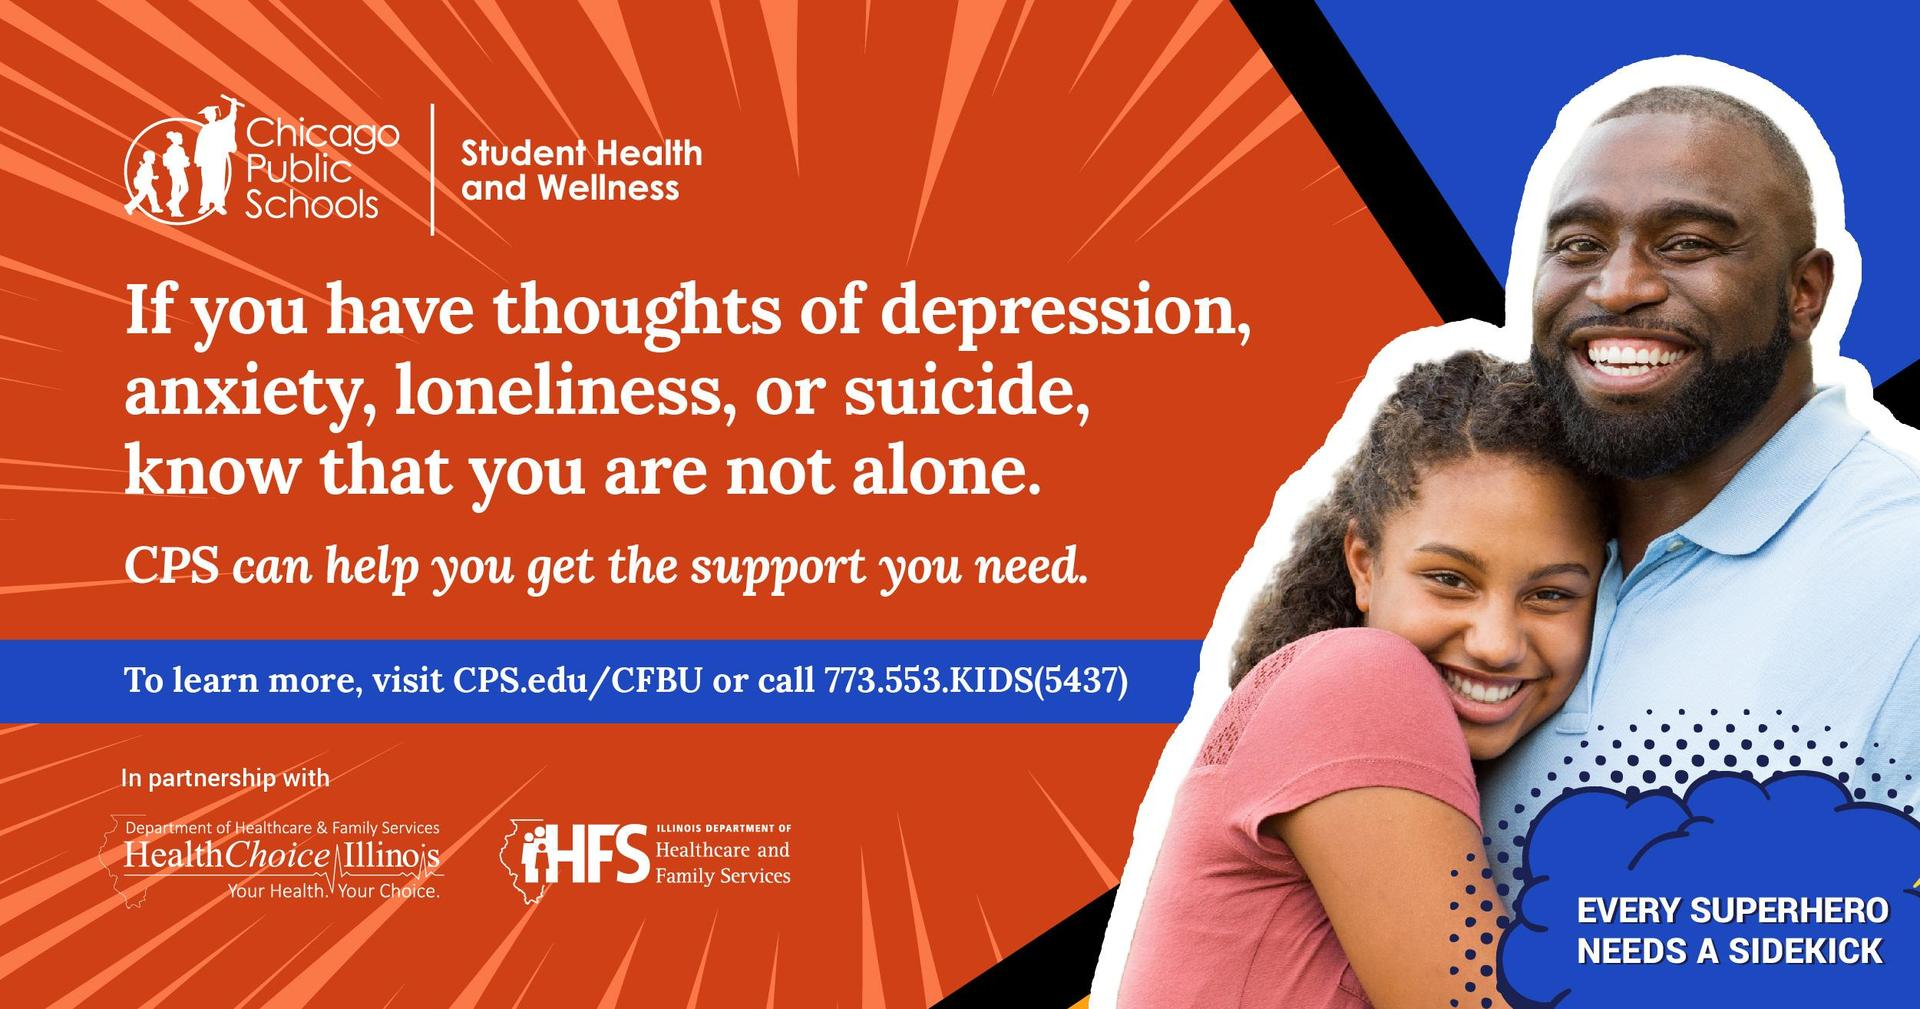 Image Thoughts of Suicide Need Help? Call 773-553-5437